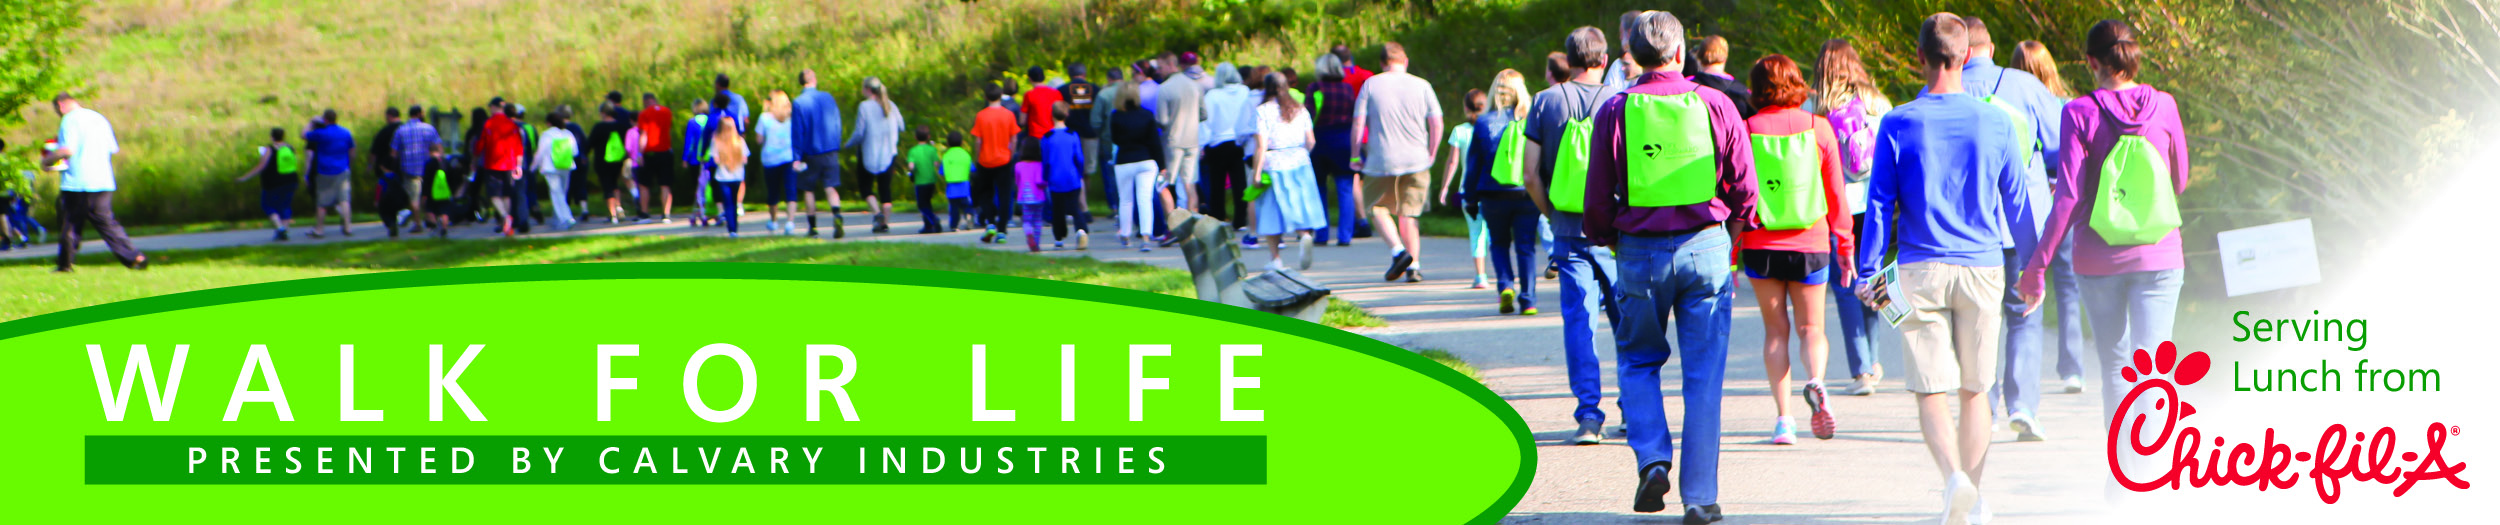 2019 Walk for Life Web Page Banner 1.2.jpg